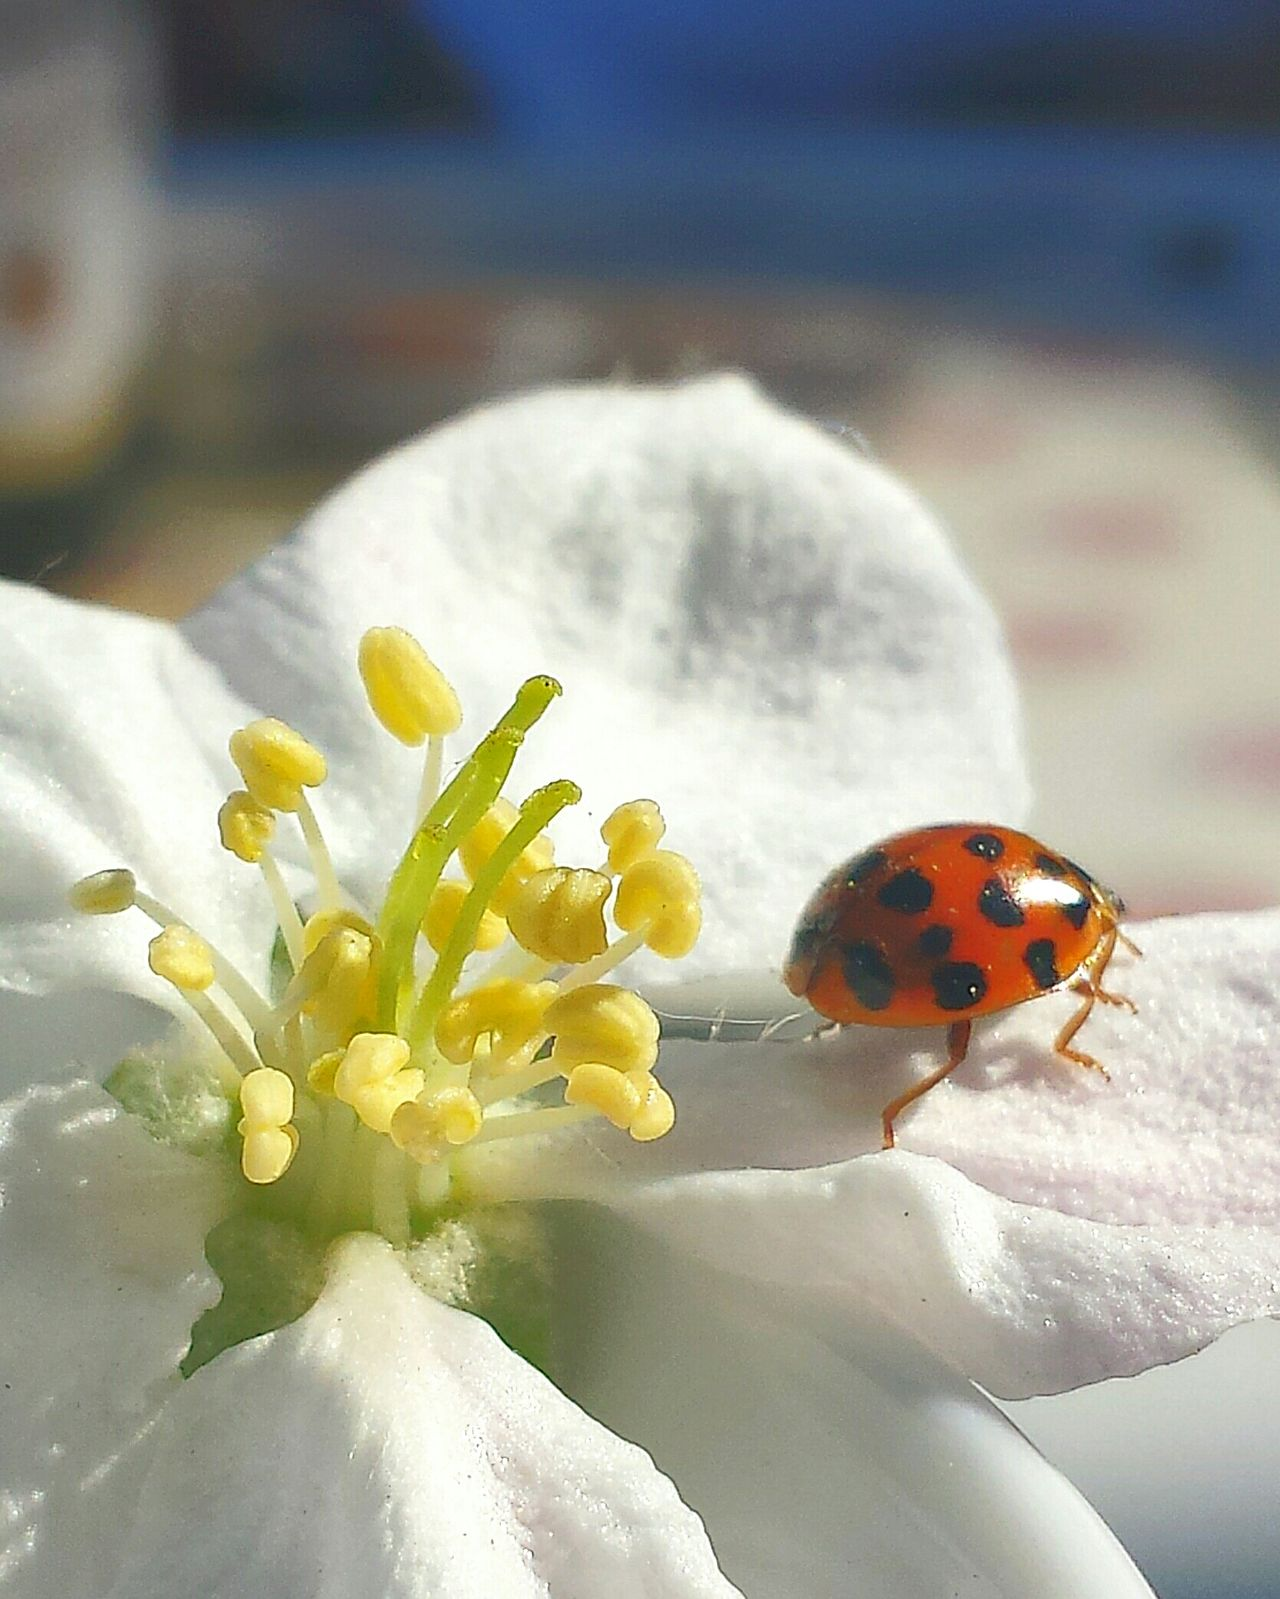 Apfelblűtenstempel ApfelblüteBeauty In Nature Natural Beauty Light And Shadow Ladybug On Apple Blossom Ladybug White Yellow Red Blue Apple Blossom Apple Blossom Petals Ladyphotographerofthemonth Showcase: May Natürliche Schönheit Beauty Of Nature Wonderful Nature Flower Porn Beliebtes Motiv Beliebte Fotos Popular Photos Close-up Detailed Images Nature's Diversities Pastel Background Ladybird Macro Considered As Lucky Charm